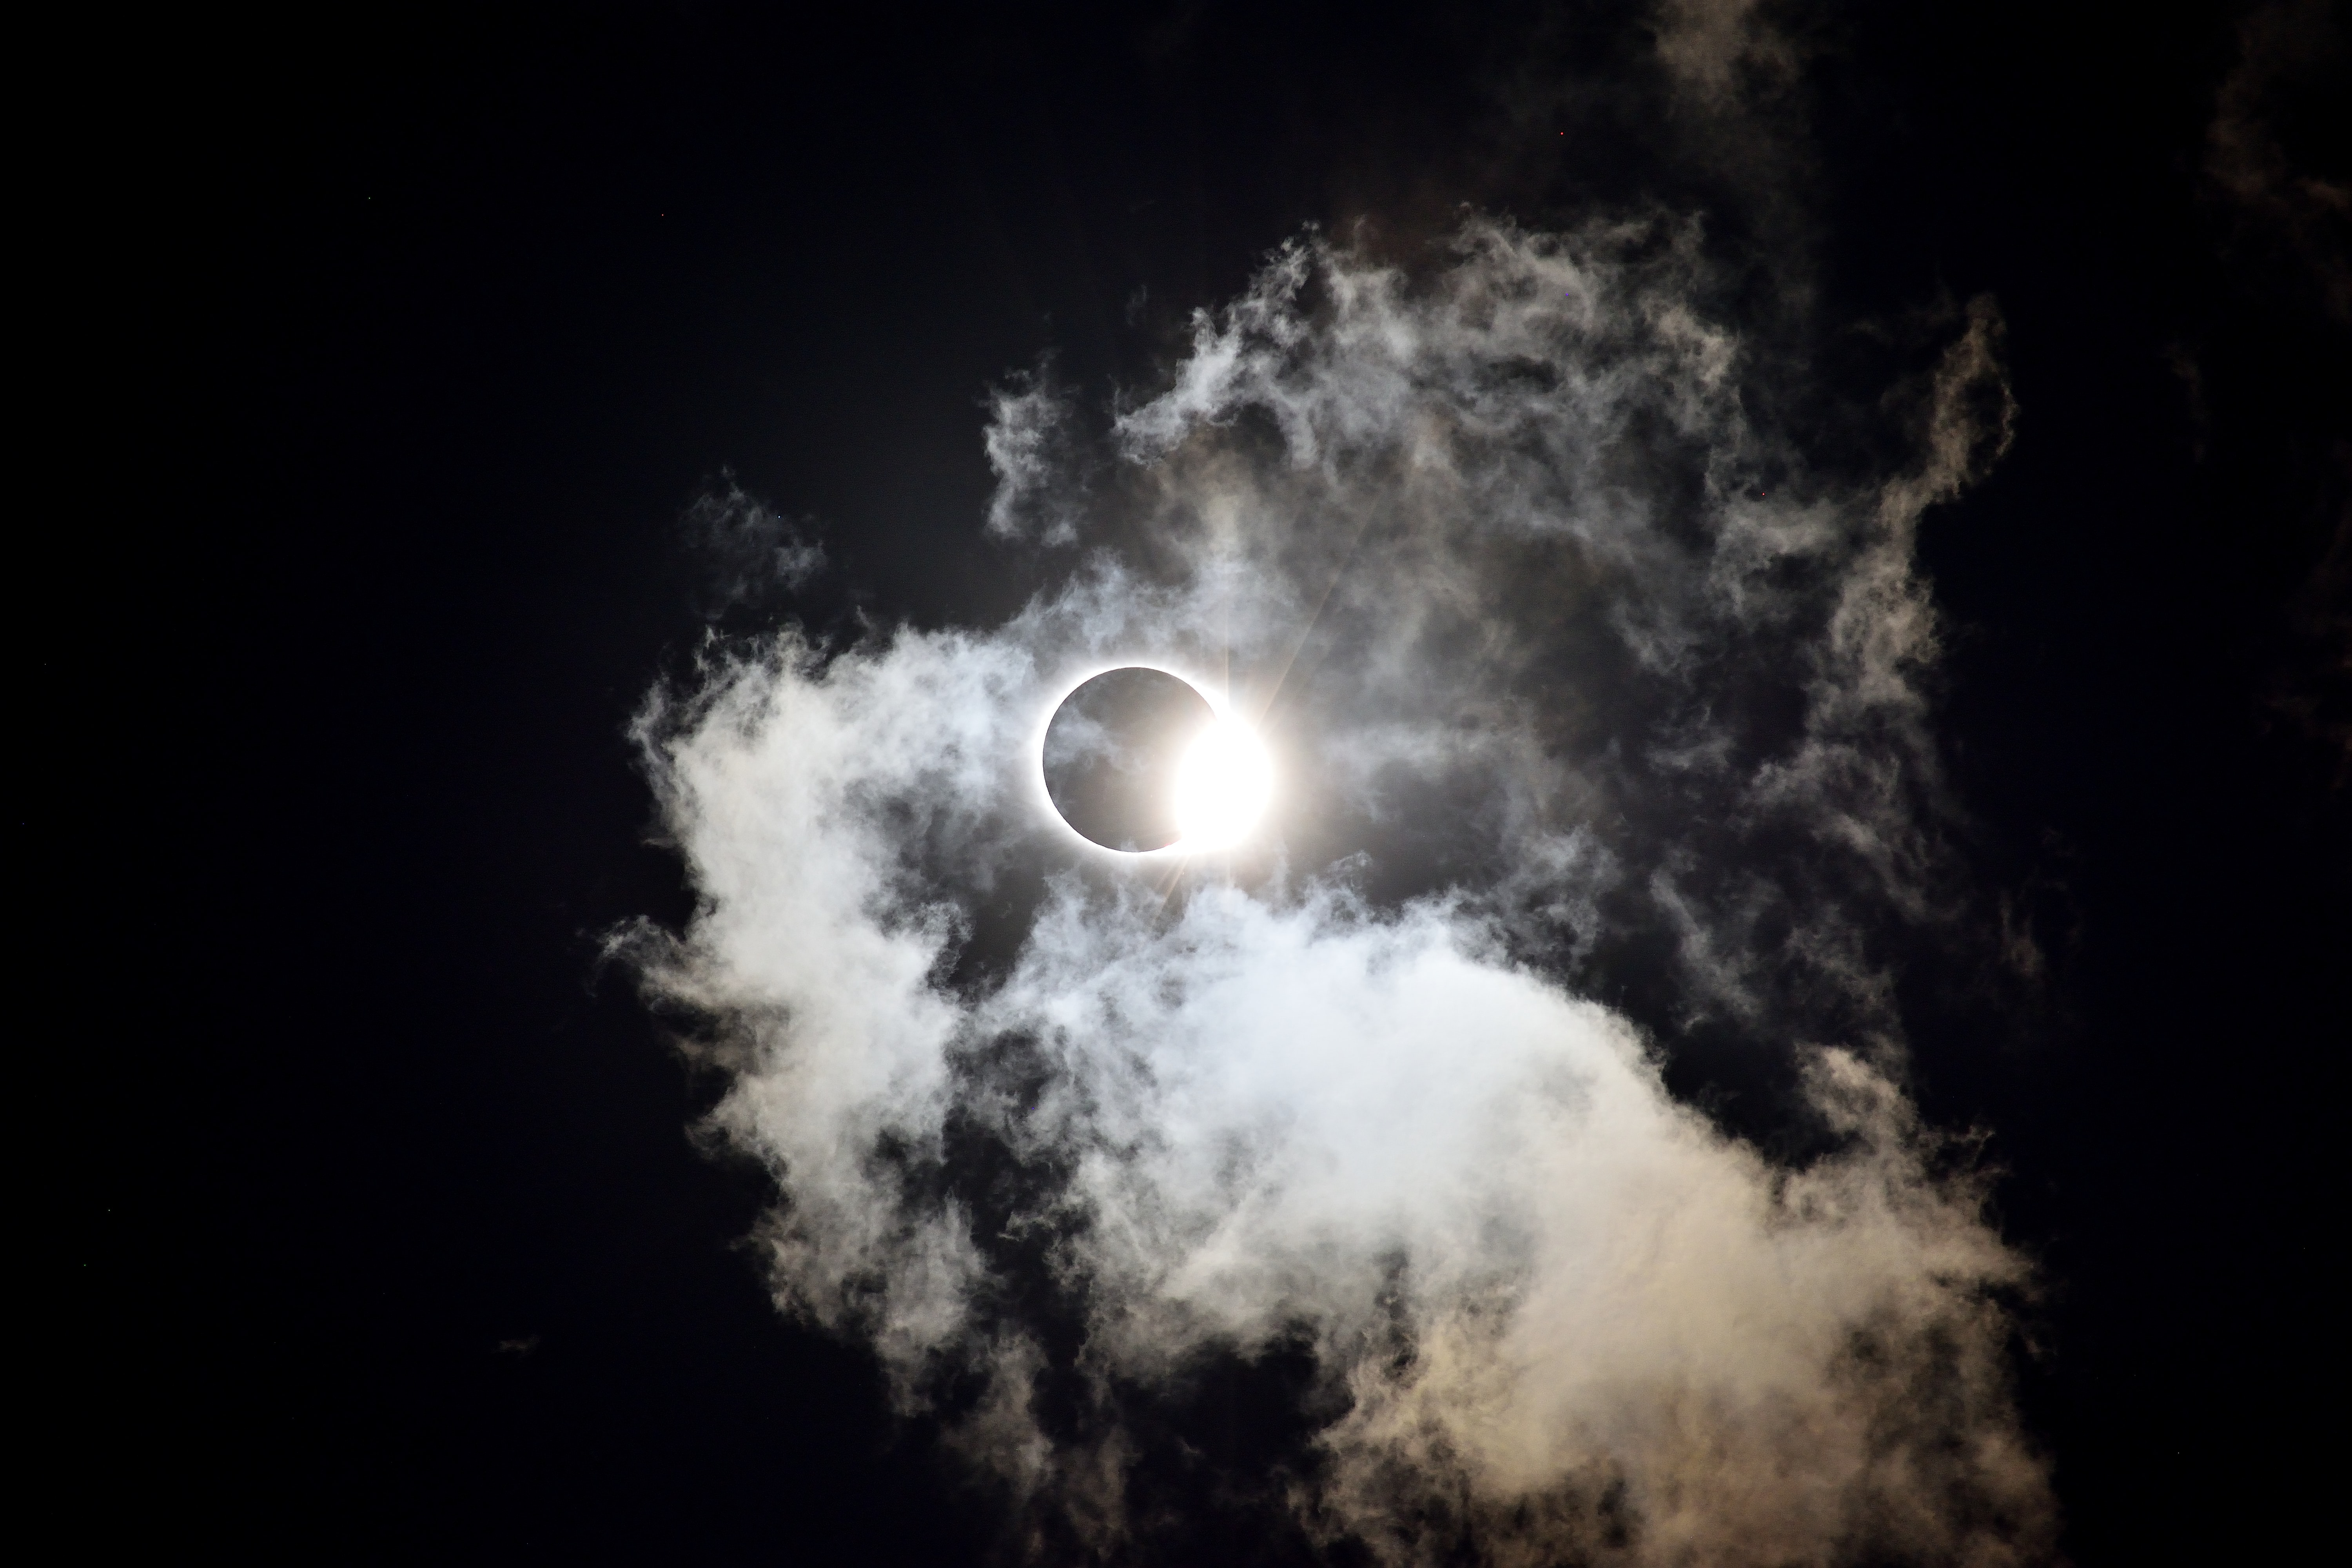 During move-in week the solar eclipse passed over us. Experiencing it and being able to take photos of it was the adventure of a lifetime.